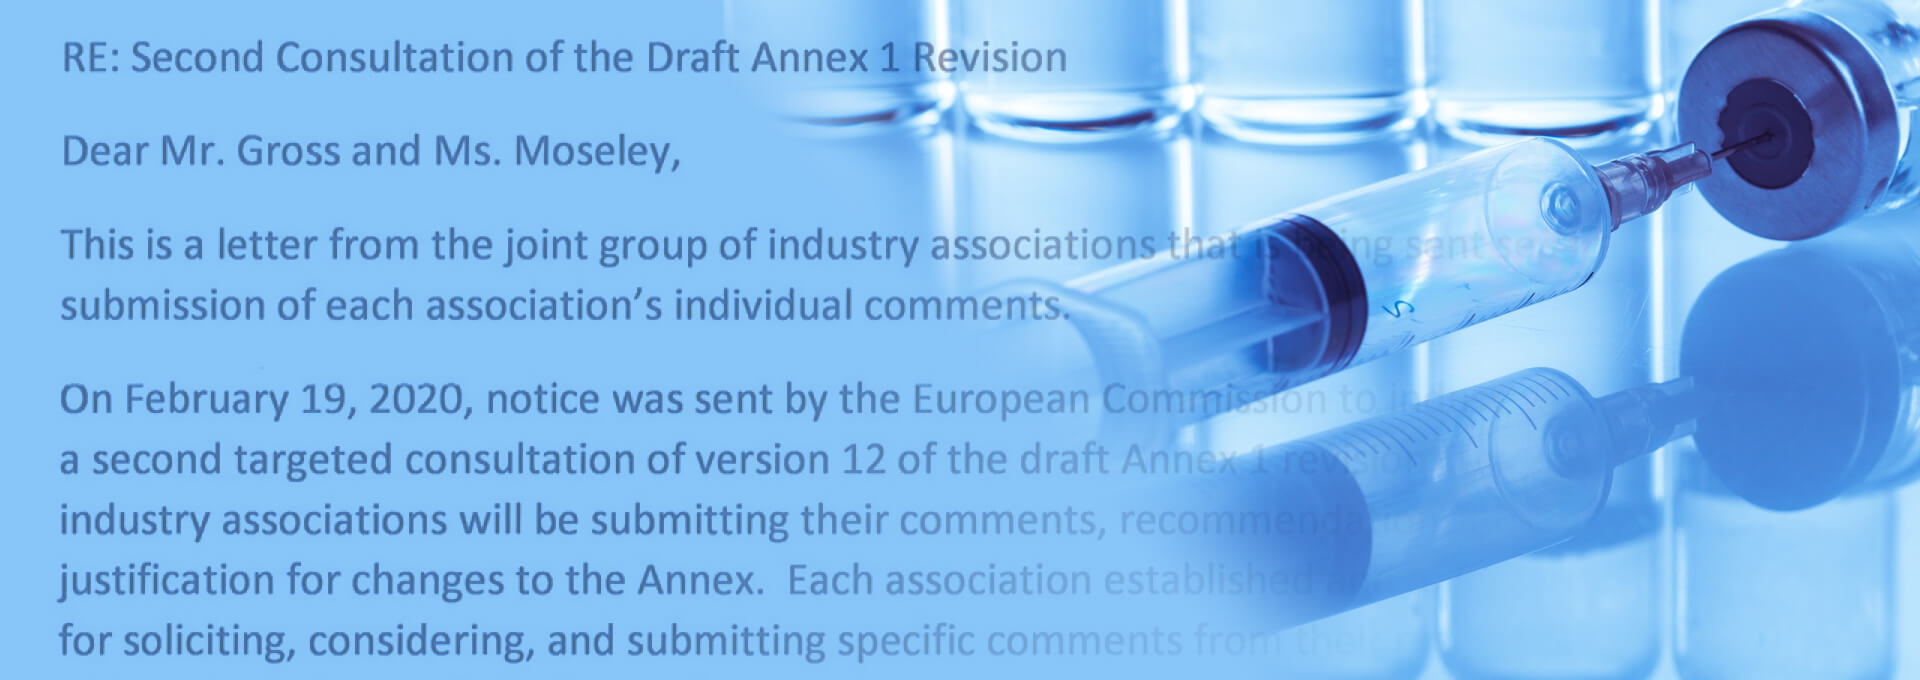 Joint Associations' Response Letter on EU Annex 1 Draft